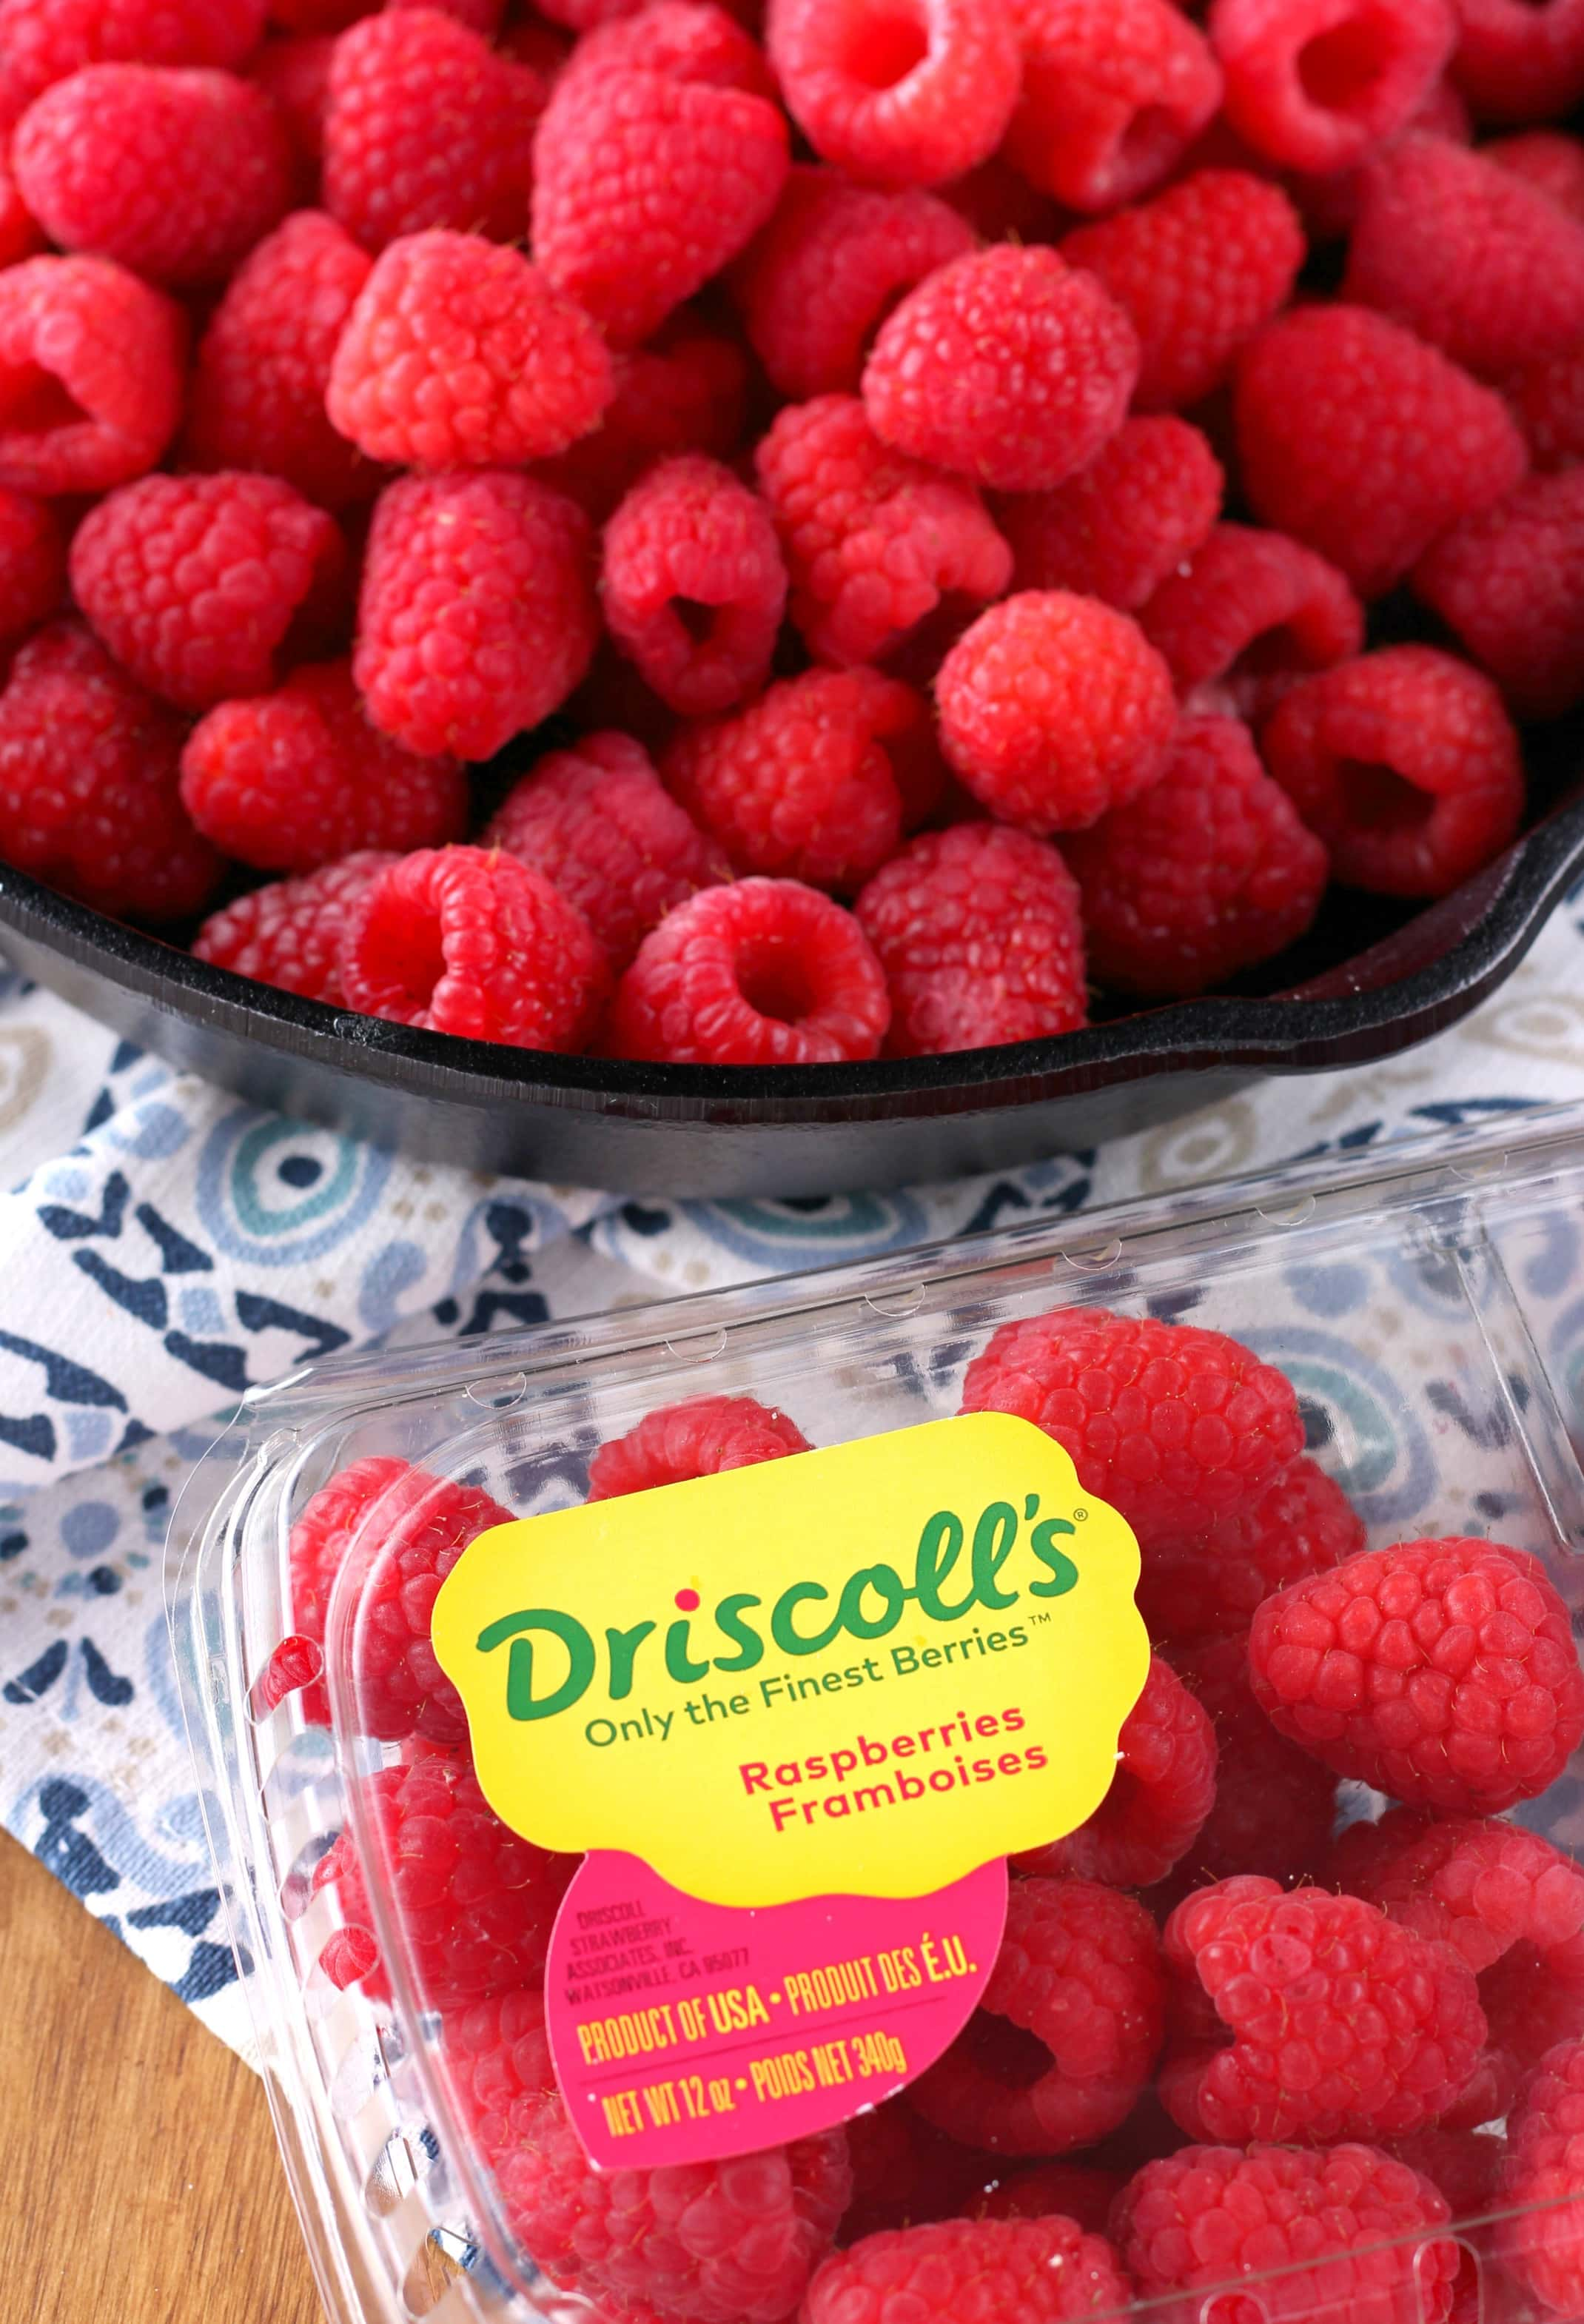 Driscoll's Raspberries #berrytogether